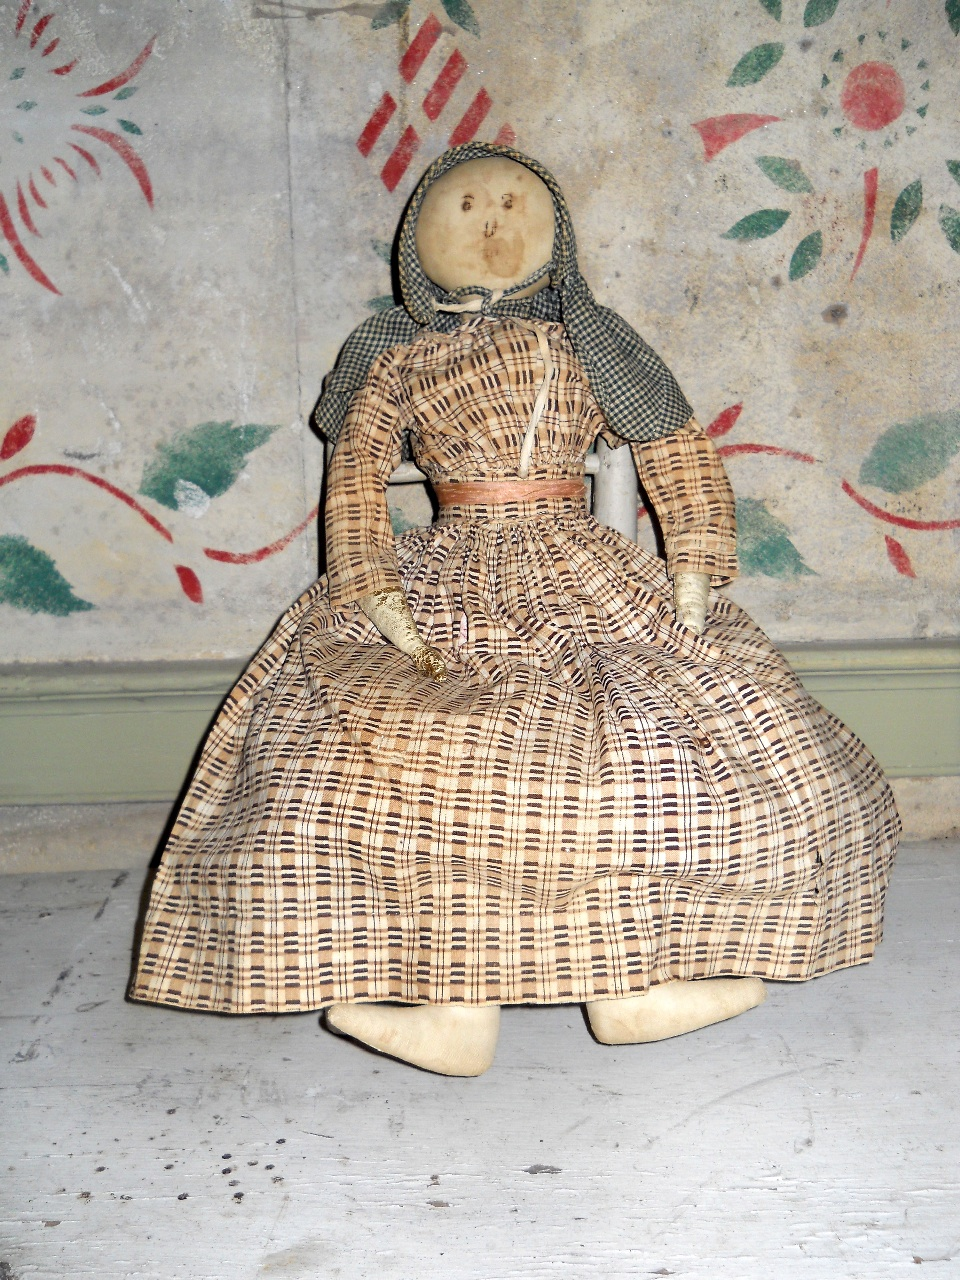 doll with kerchief